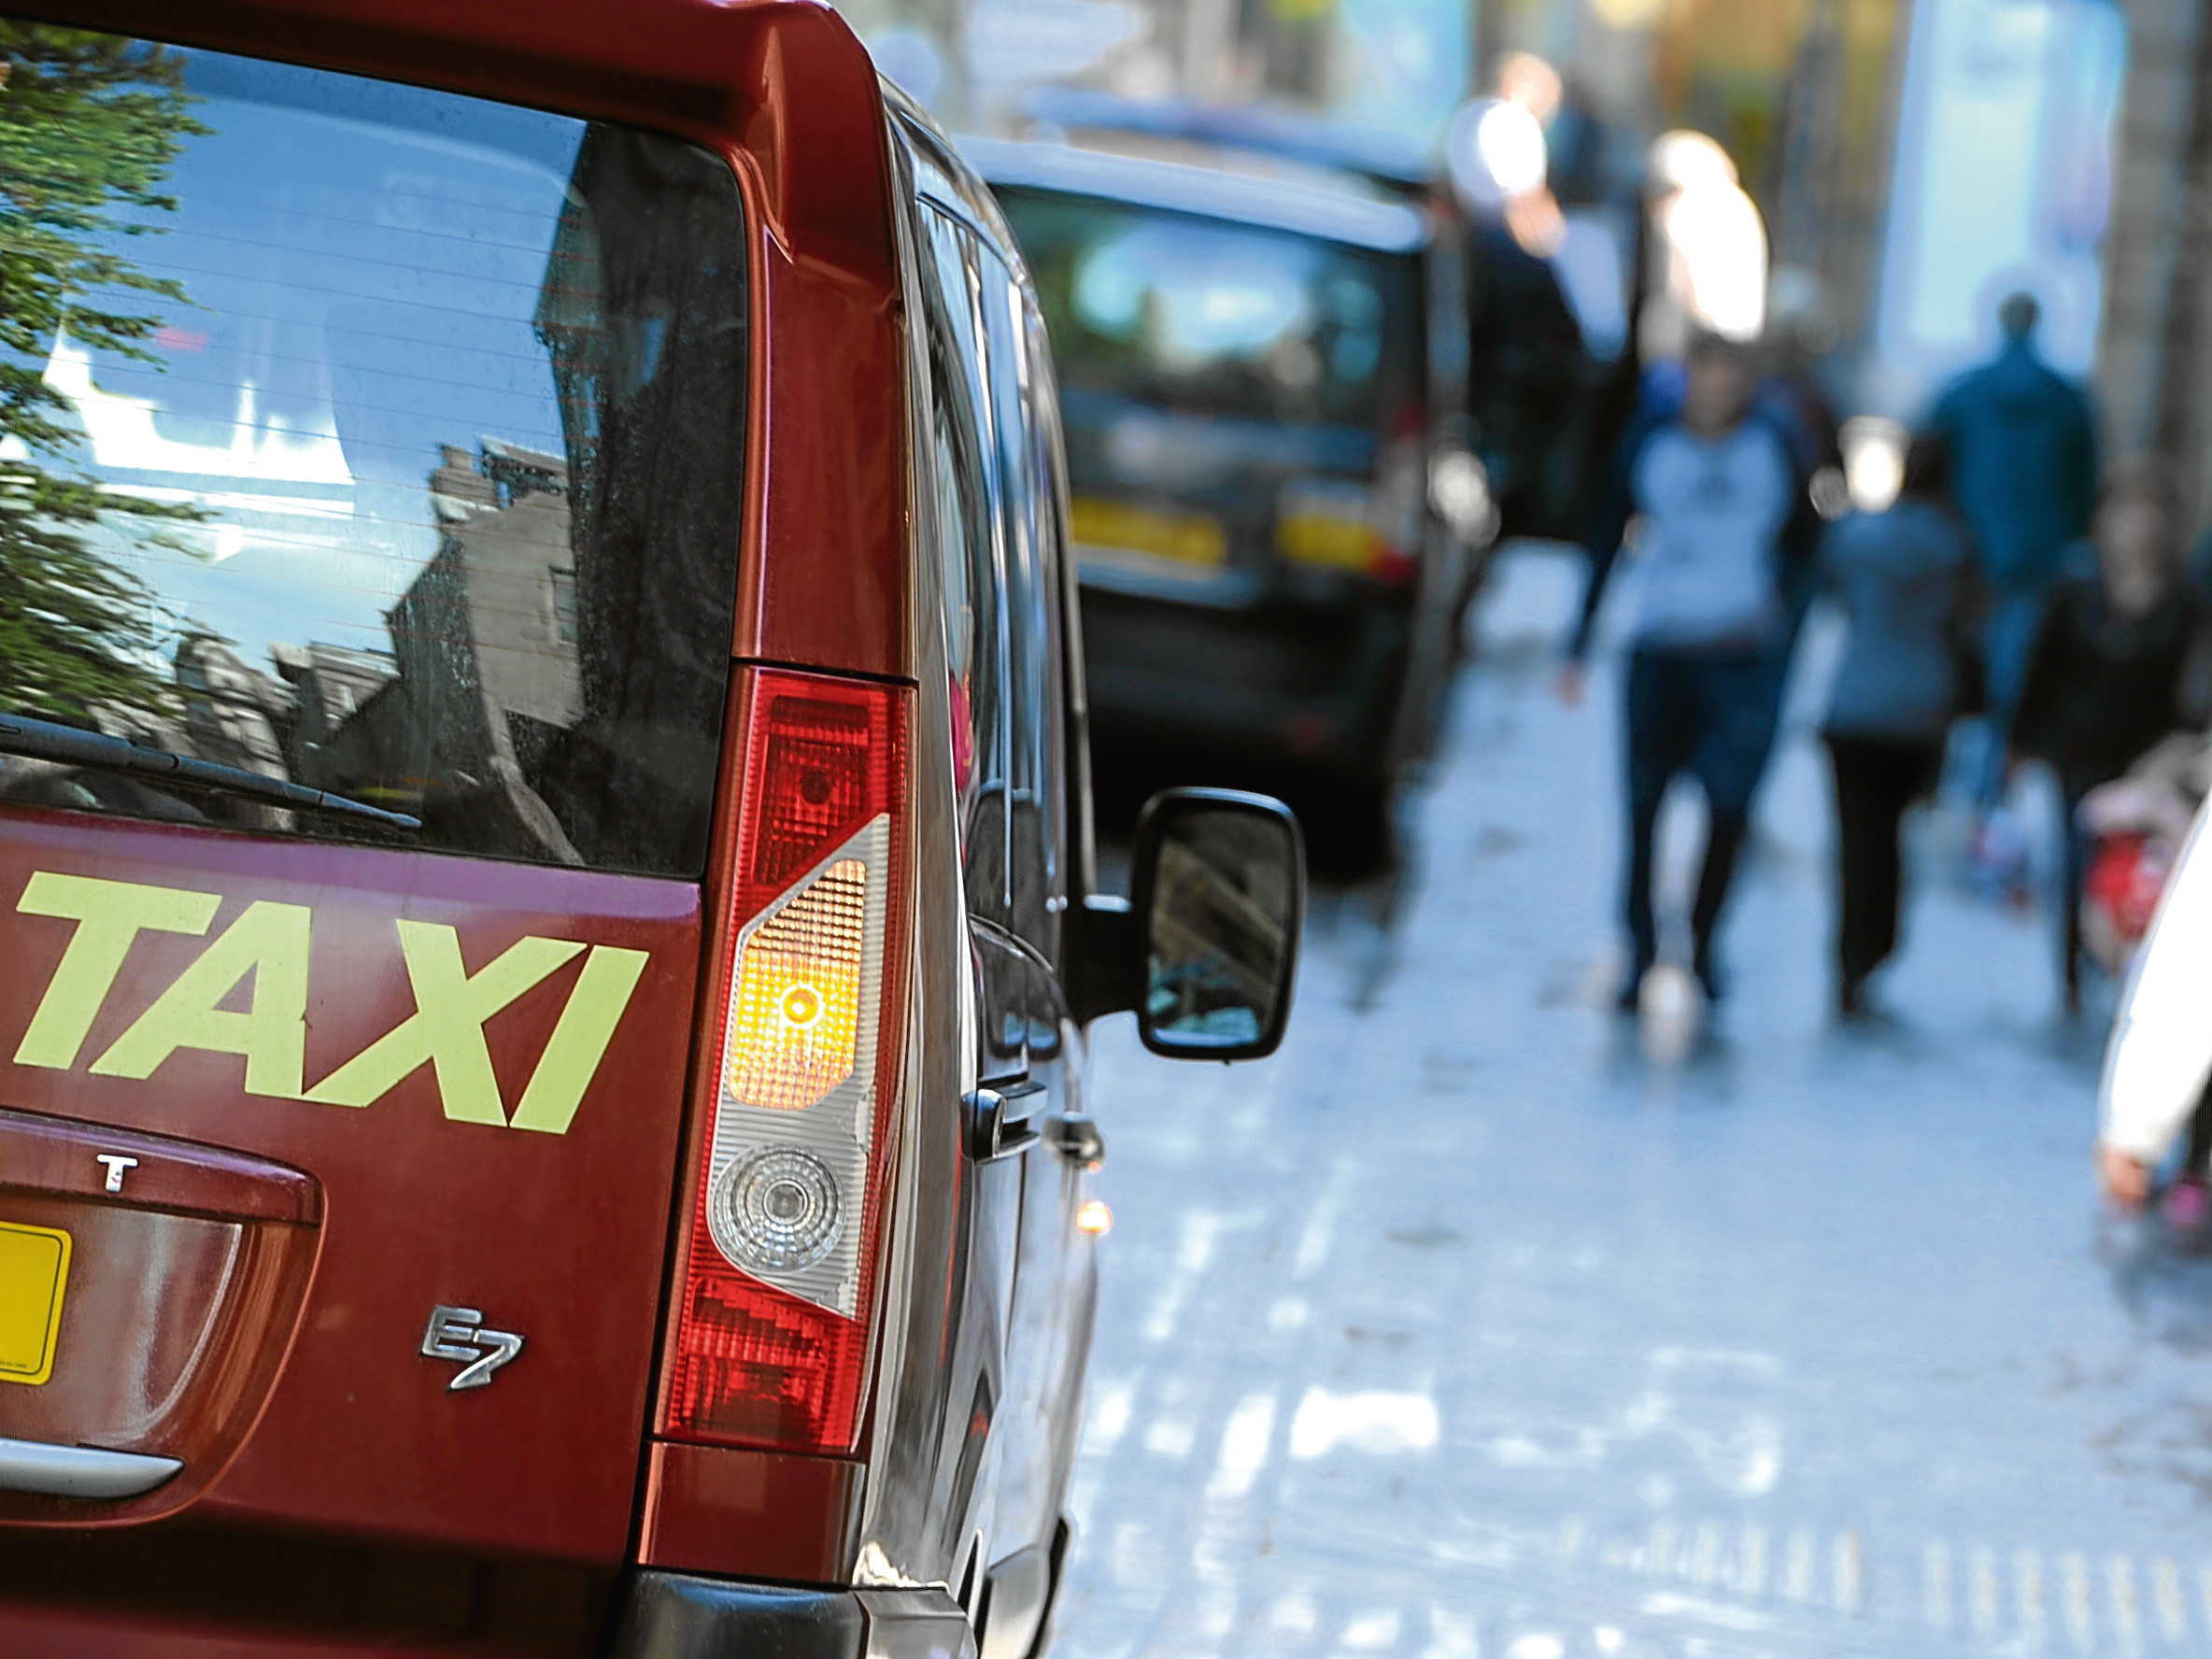 The Taxi Card Scheme, which gave disabled people a travel discount, was discontinued in 2010.